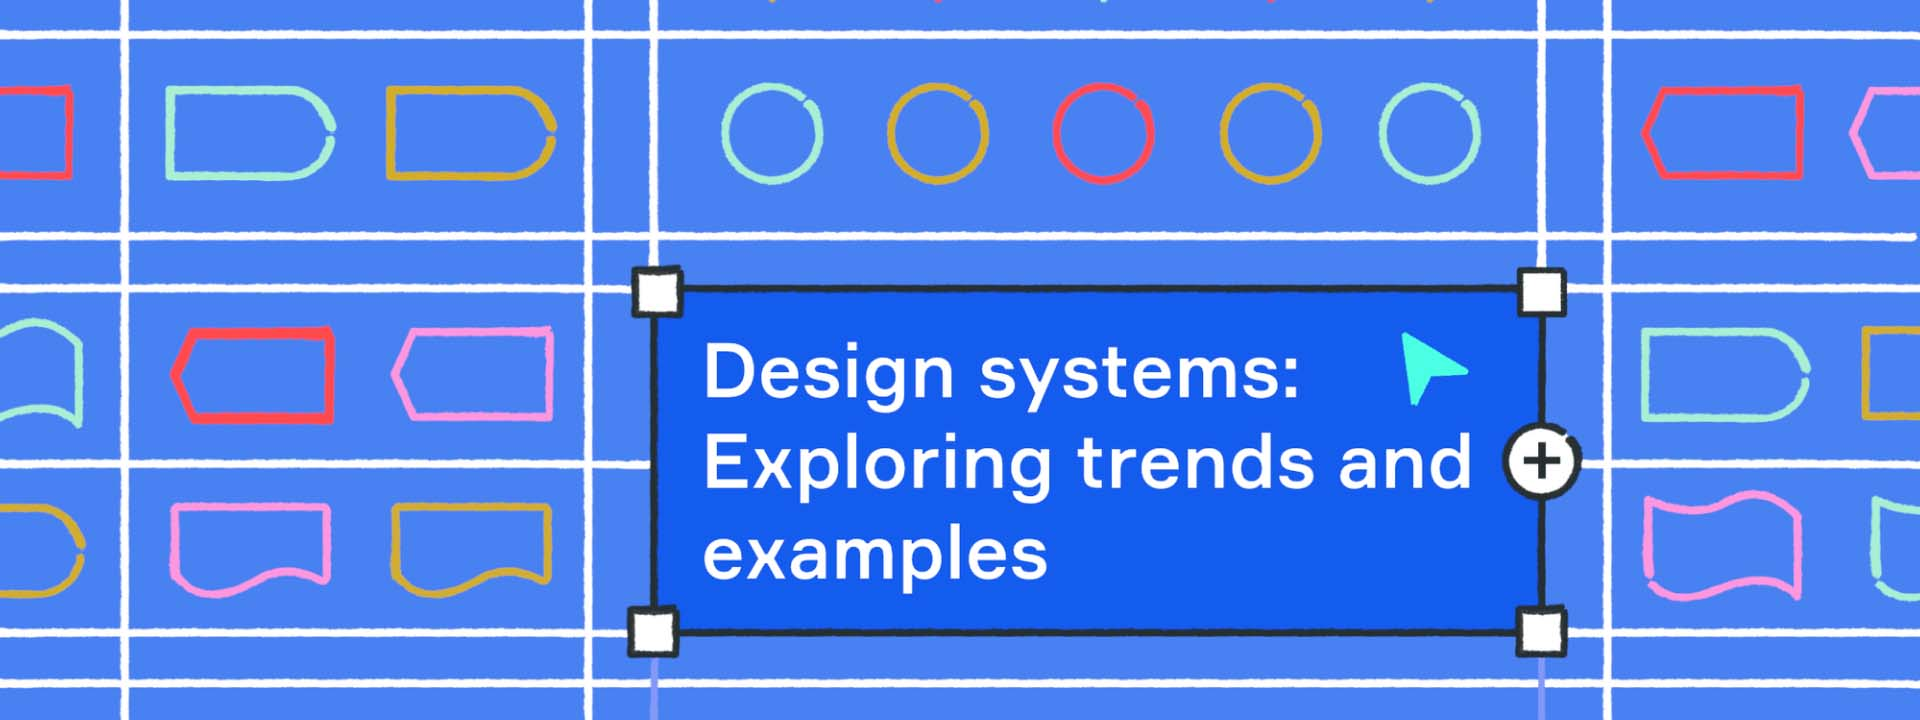 Design systems: Exploring trends and examples